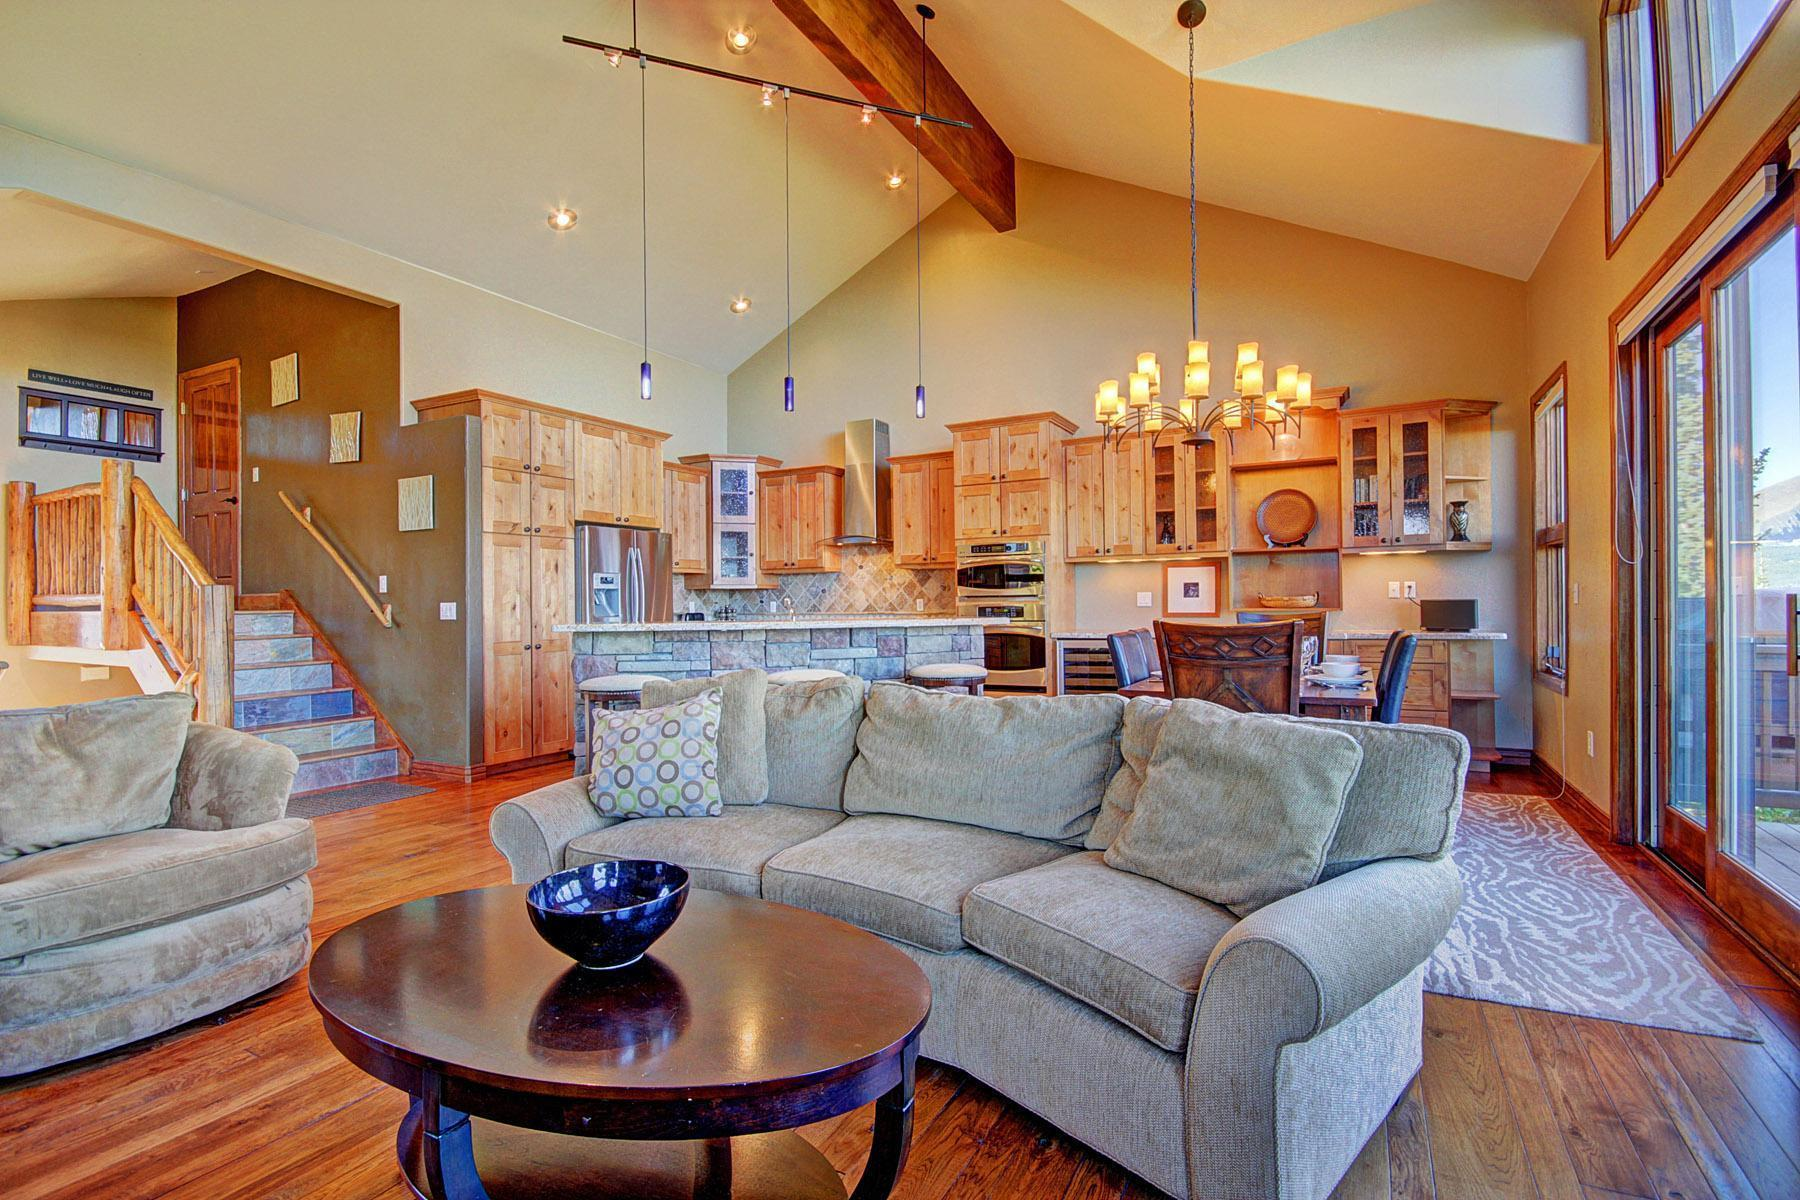 Large bright townhome with mountain and ski resort views